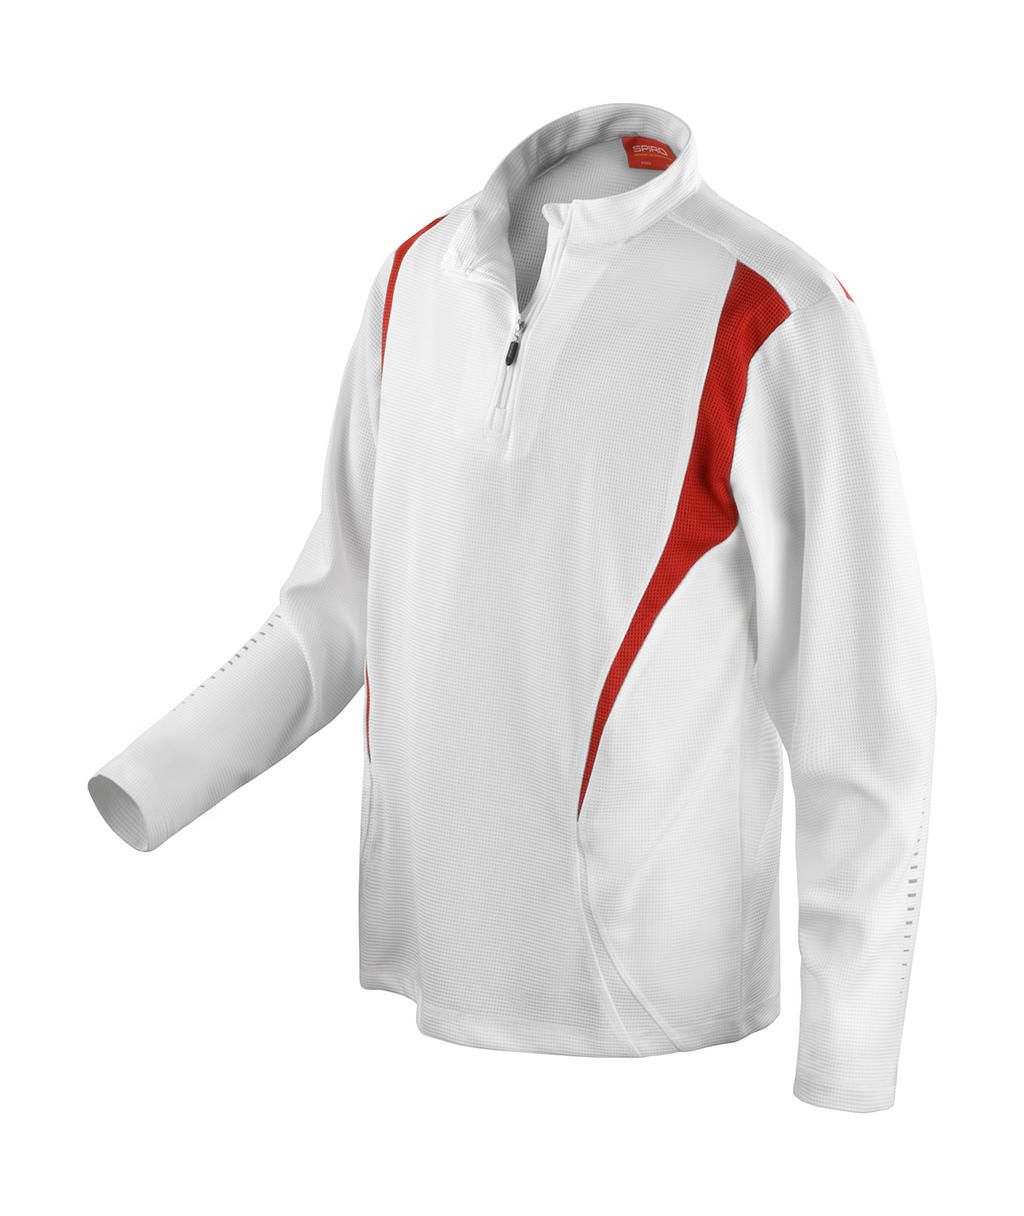 Spiro Trial Training Top